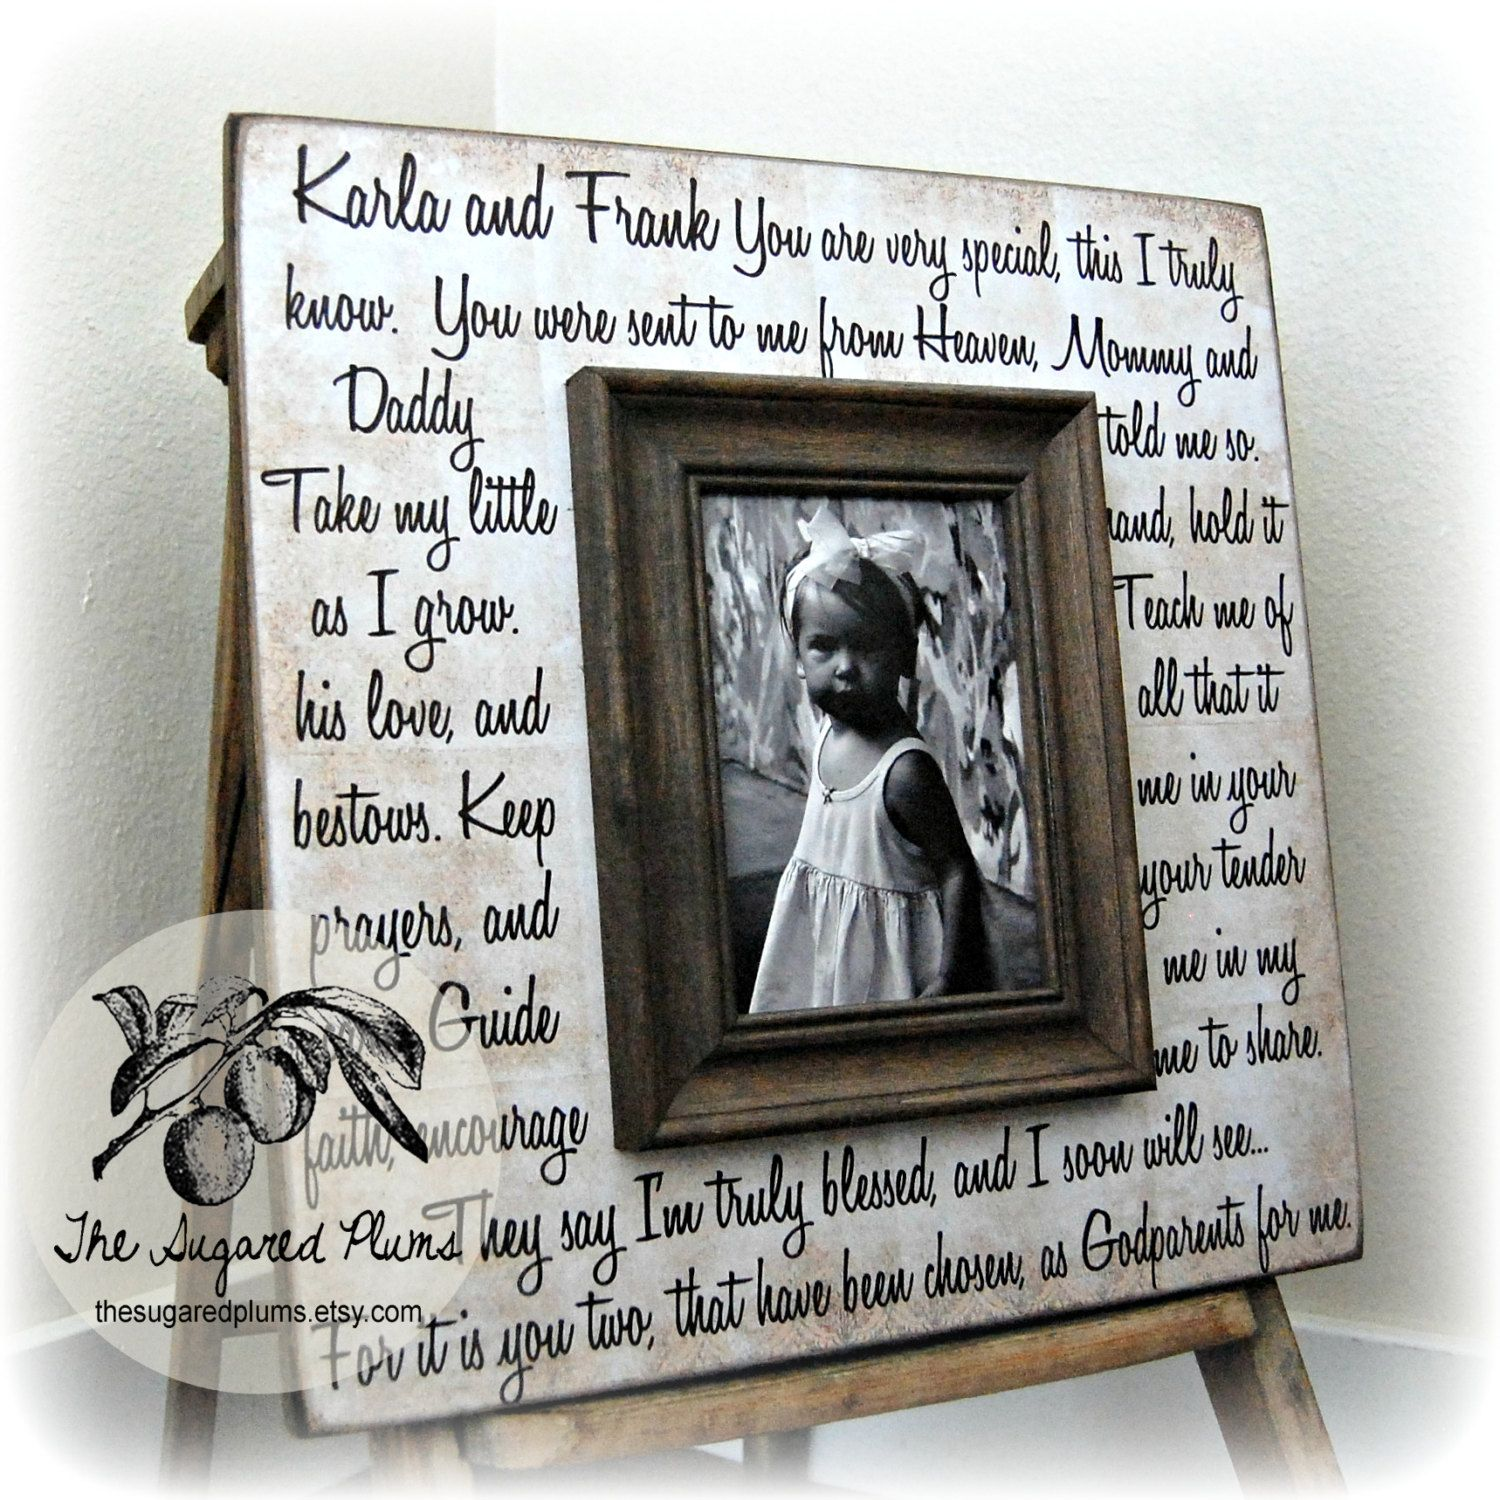 Godmother gift godfather gift godparent gift baptism gift for godmother gift godfather gift godparent gift by thesugaredplums 7500 jeuxipadfo Image collections